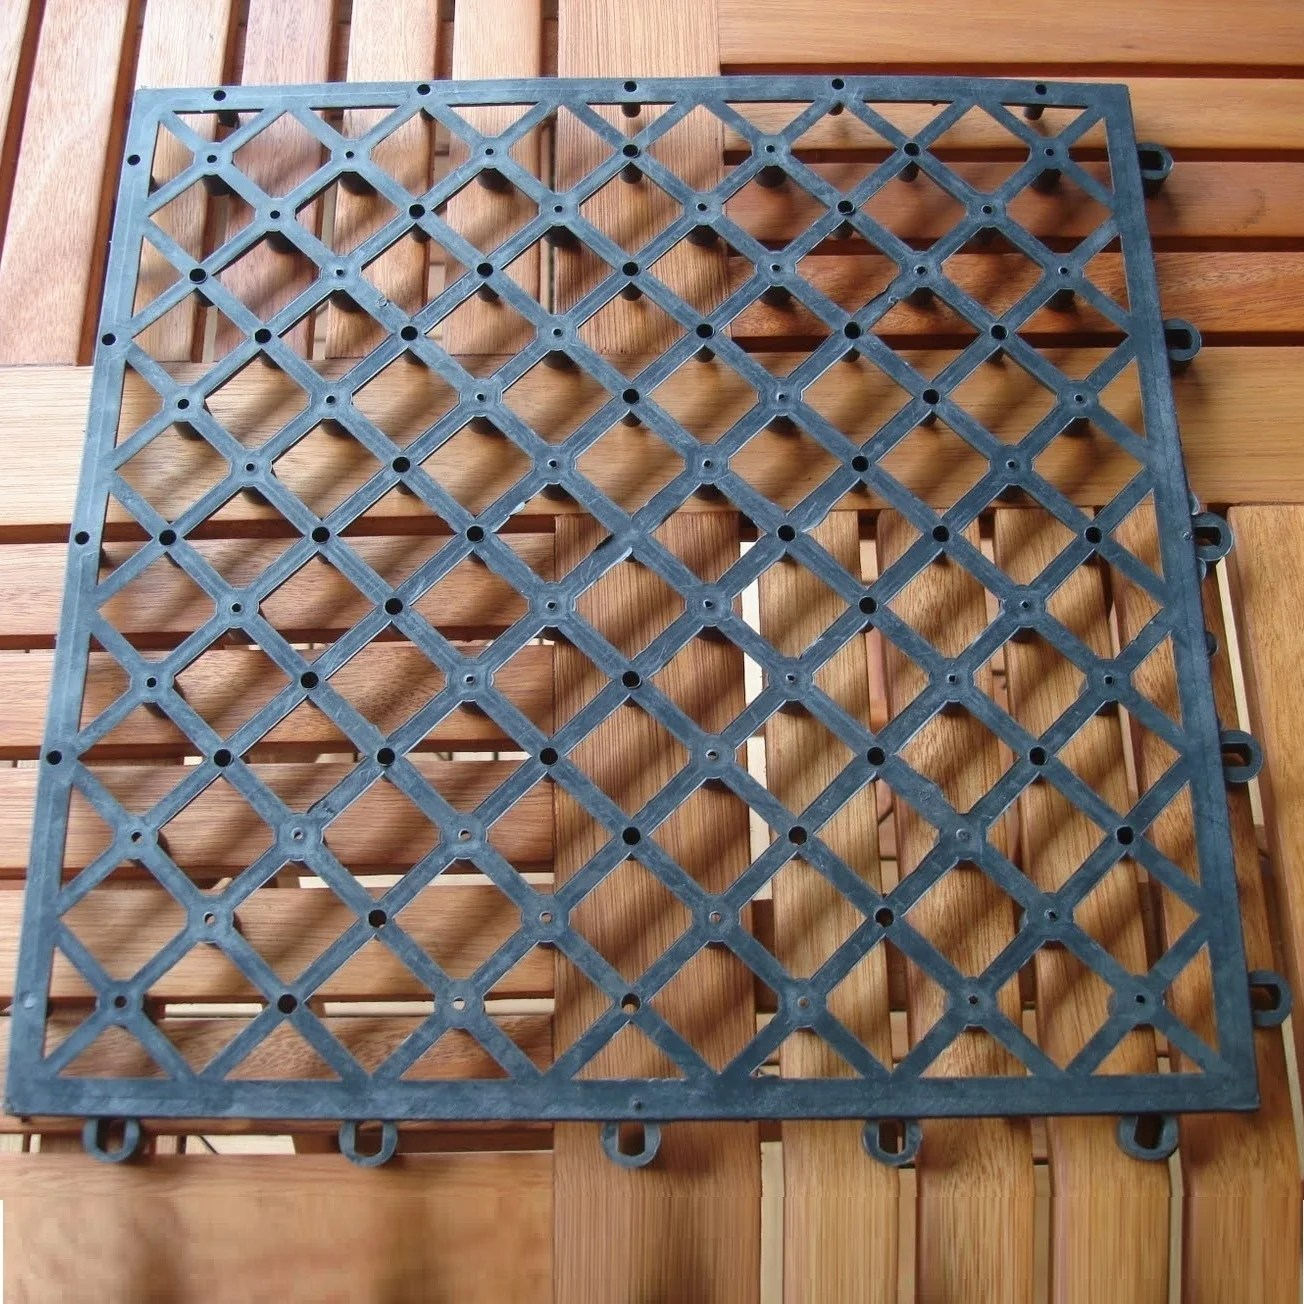 Interlocking Deck Tiles 12 Diagonal Slat Acacia Interlocking Deck Tile Teak Finish Set Of 10 Tiles